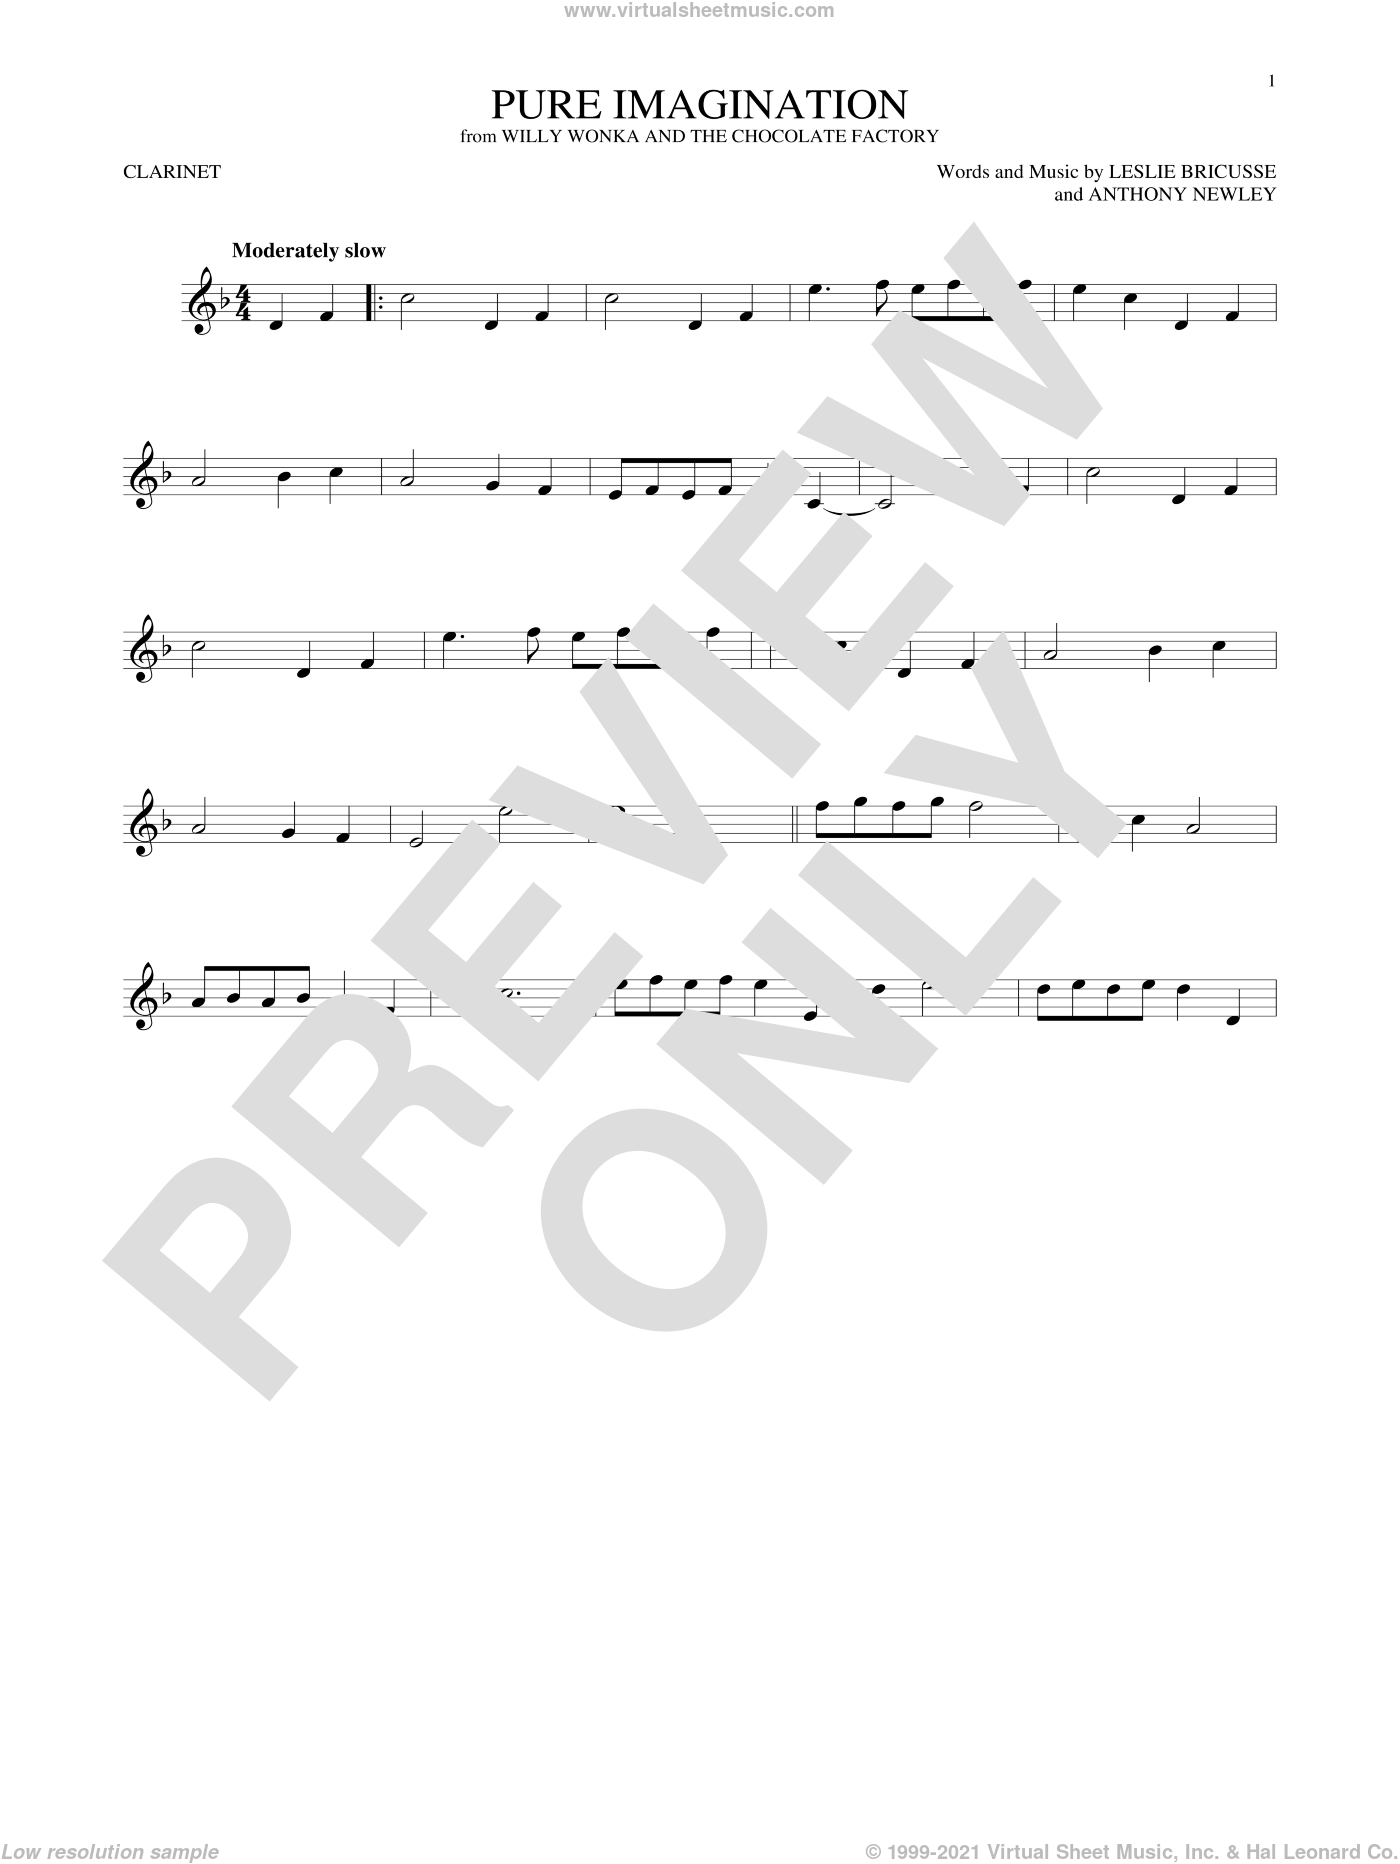 Pure Imagination sheet music for clarinet solo by Leslie Bricusse and Anthony Newley, intermediate skill level